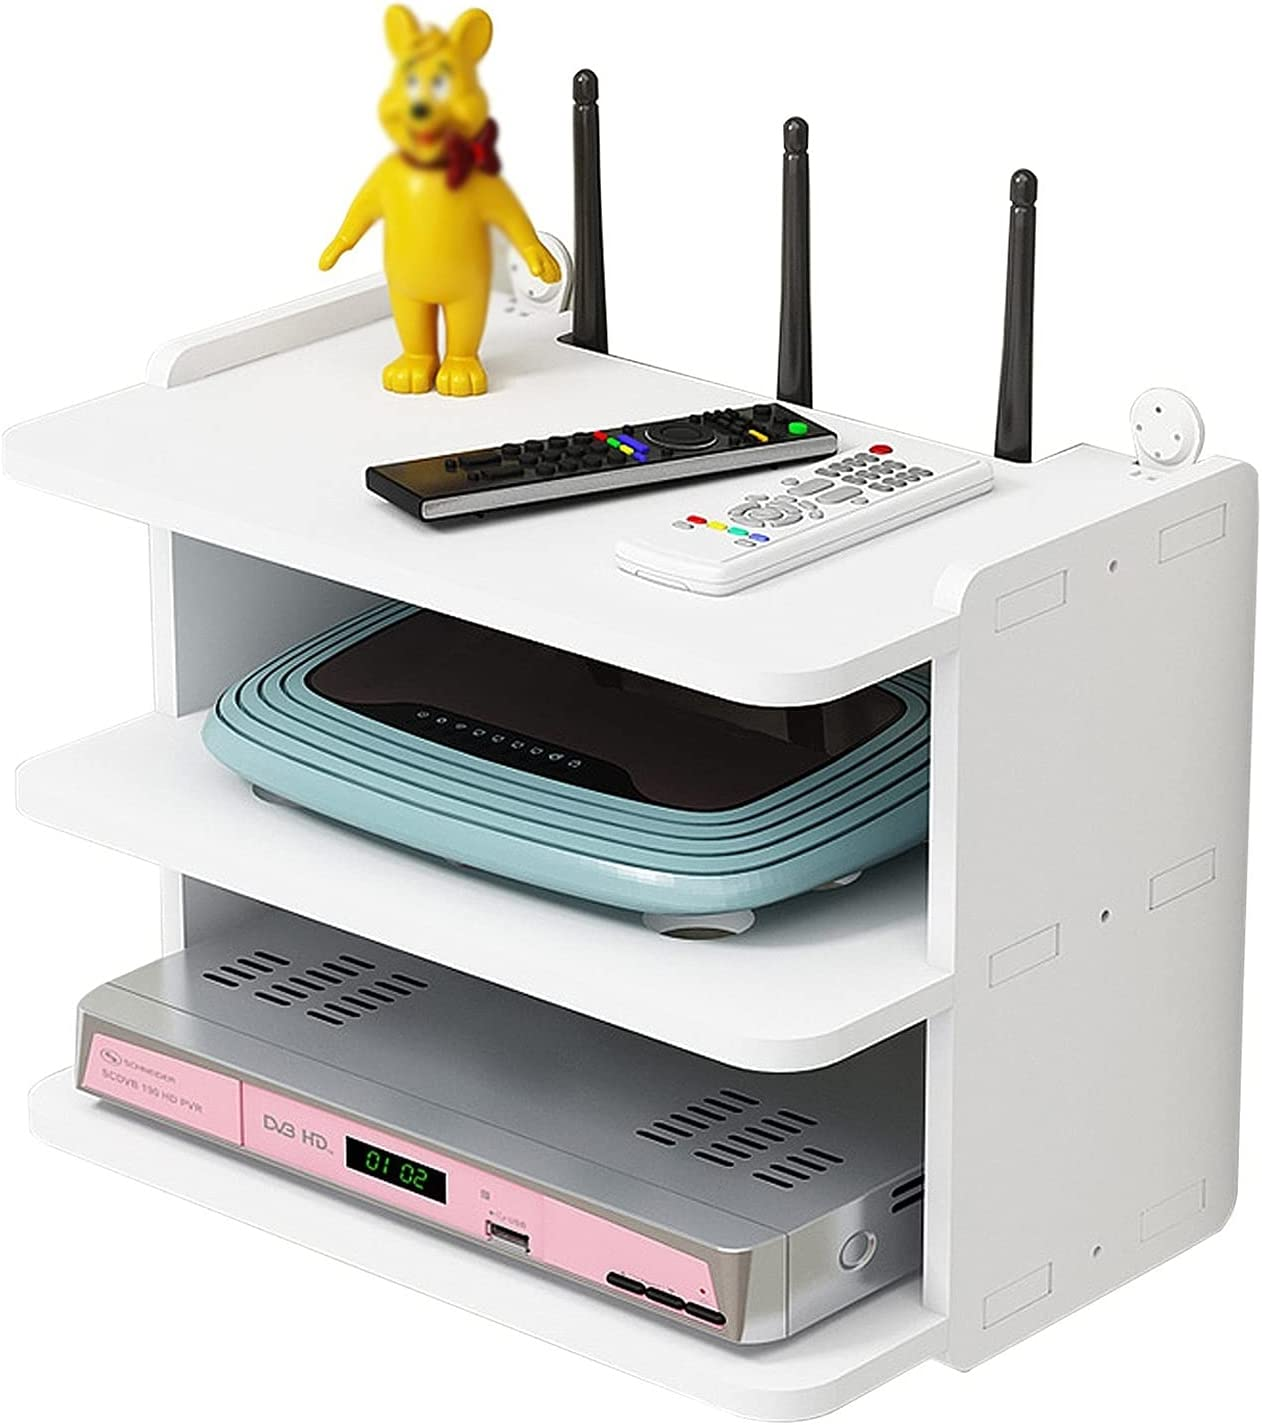 JF-TVQJ TV Set-top Storage Box Wall Super beauty product restock Very popular quality top WiFi Router T Mounted Shelf